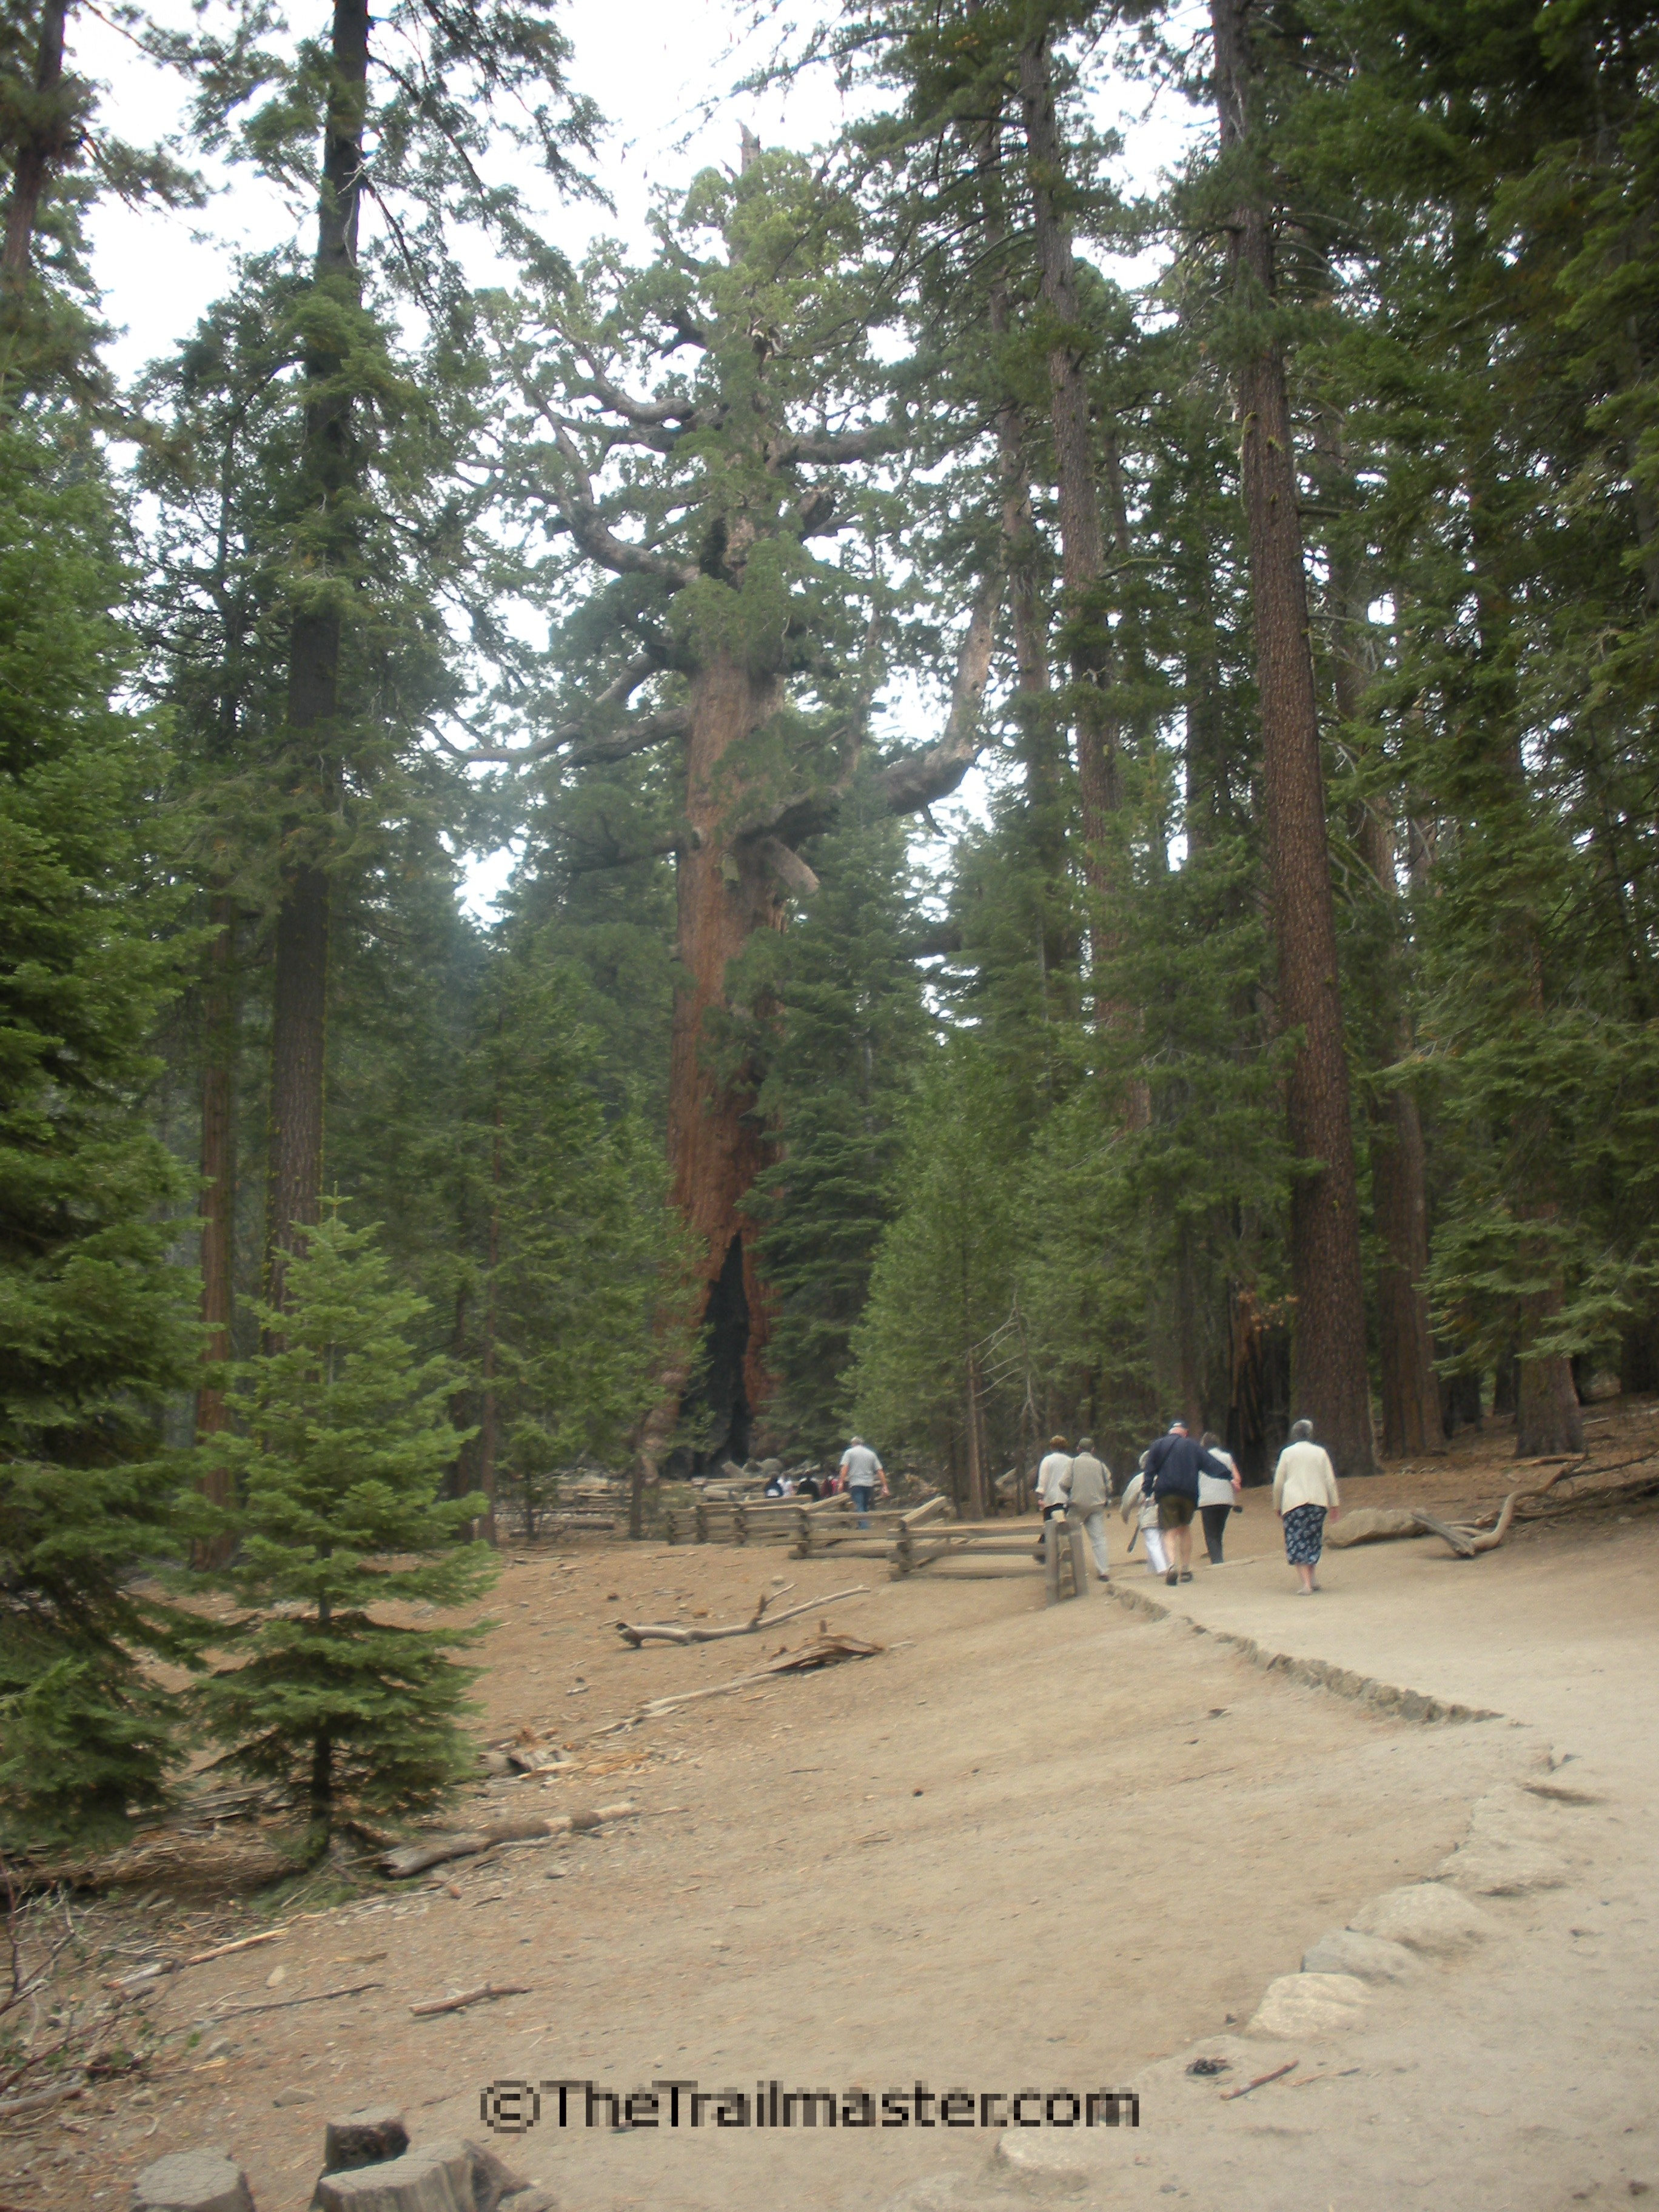 Mariposa Grove: Not a place for solitude, but you can hike past much of the crowd.